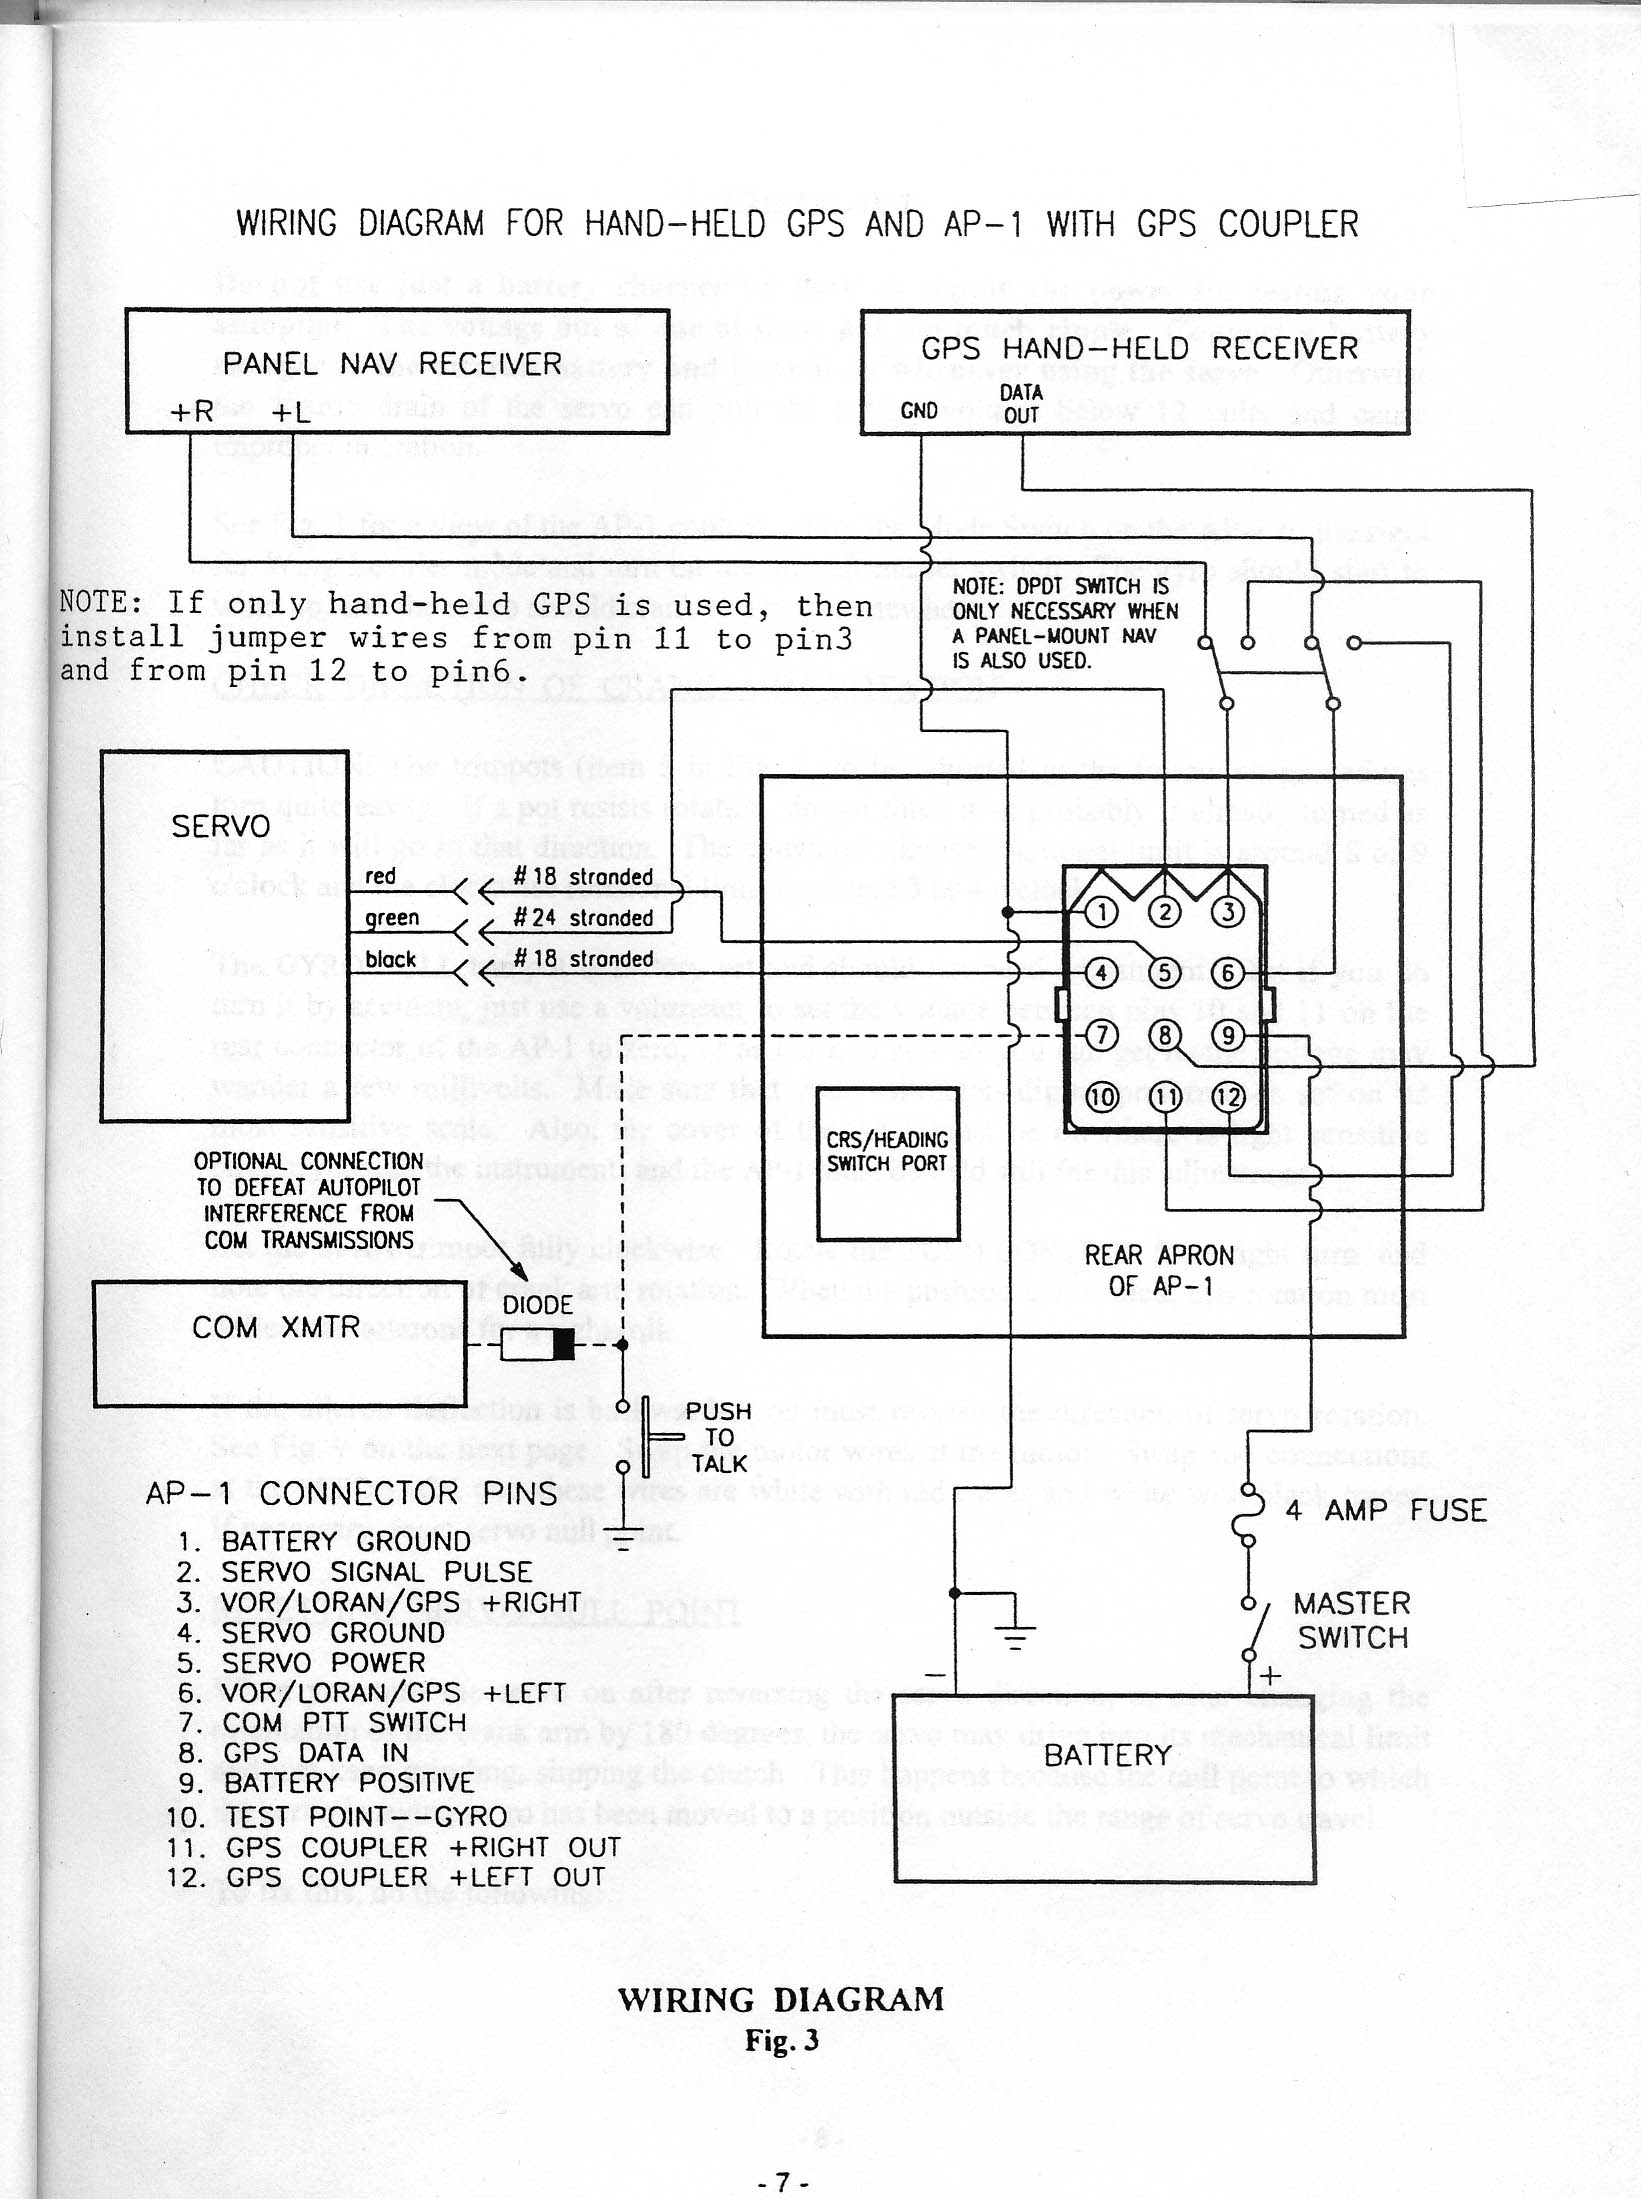 diagram king ky 92 wiring diagram automotive wiring diagrams \u2022 wiring king ka 134 audio panel wiring diagram at creativeand.co